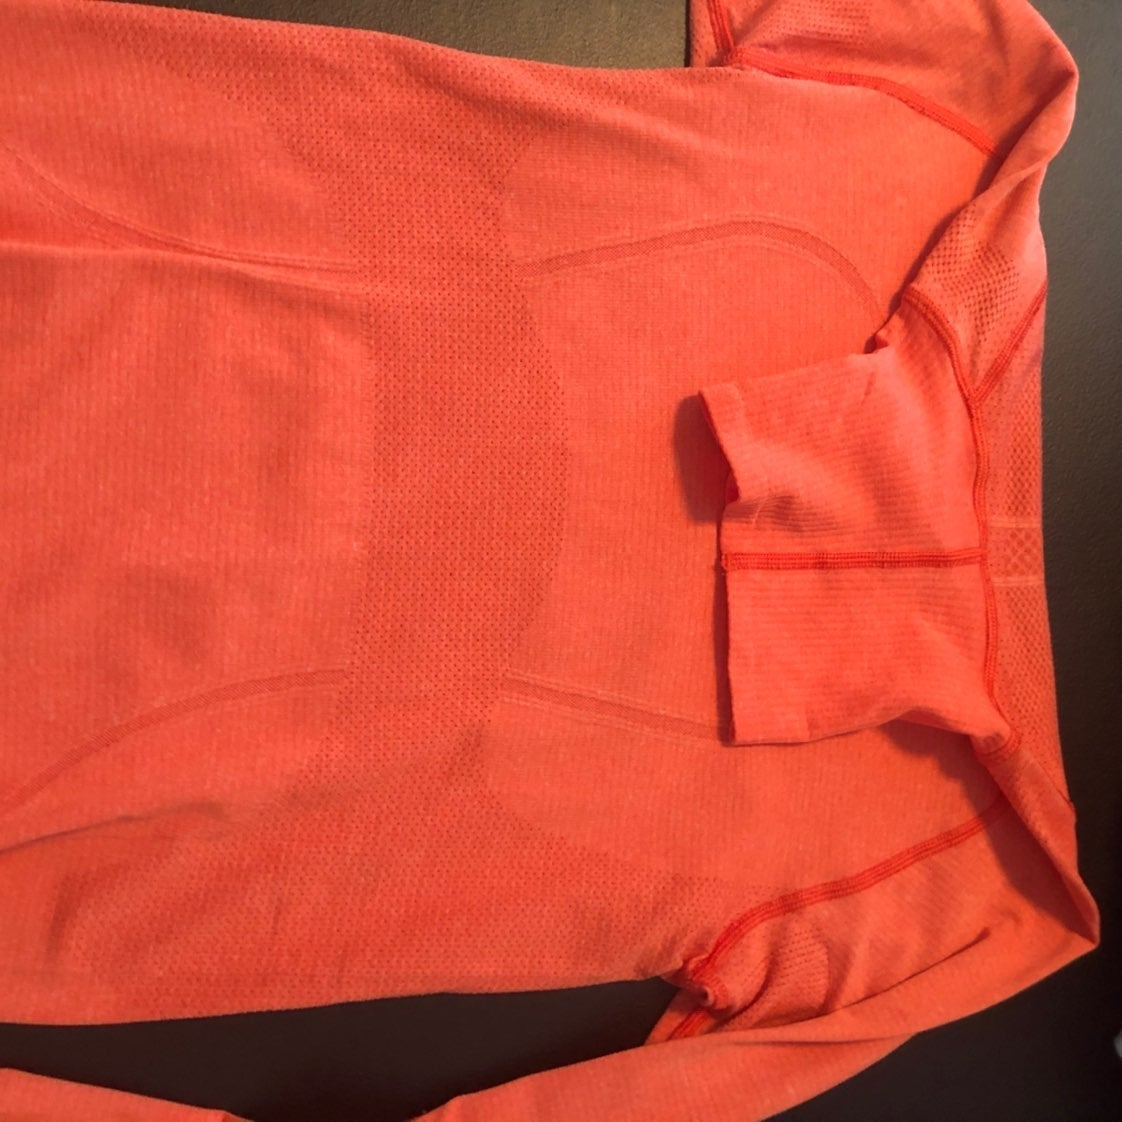 Lululemon turtleneck Size 6